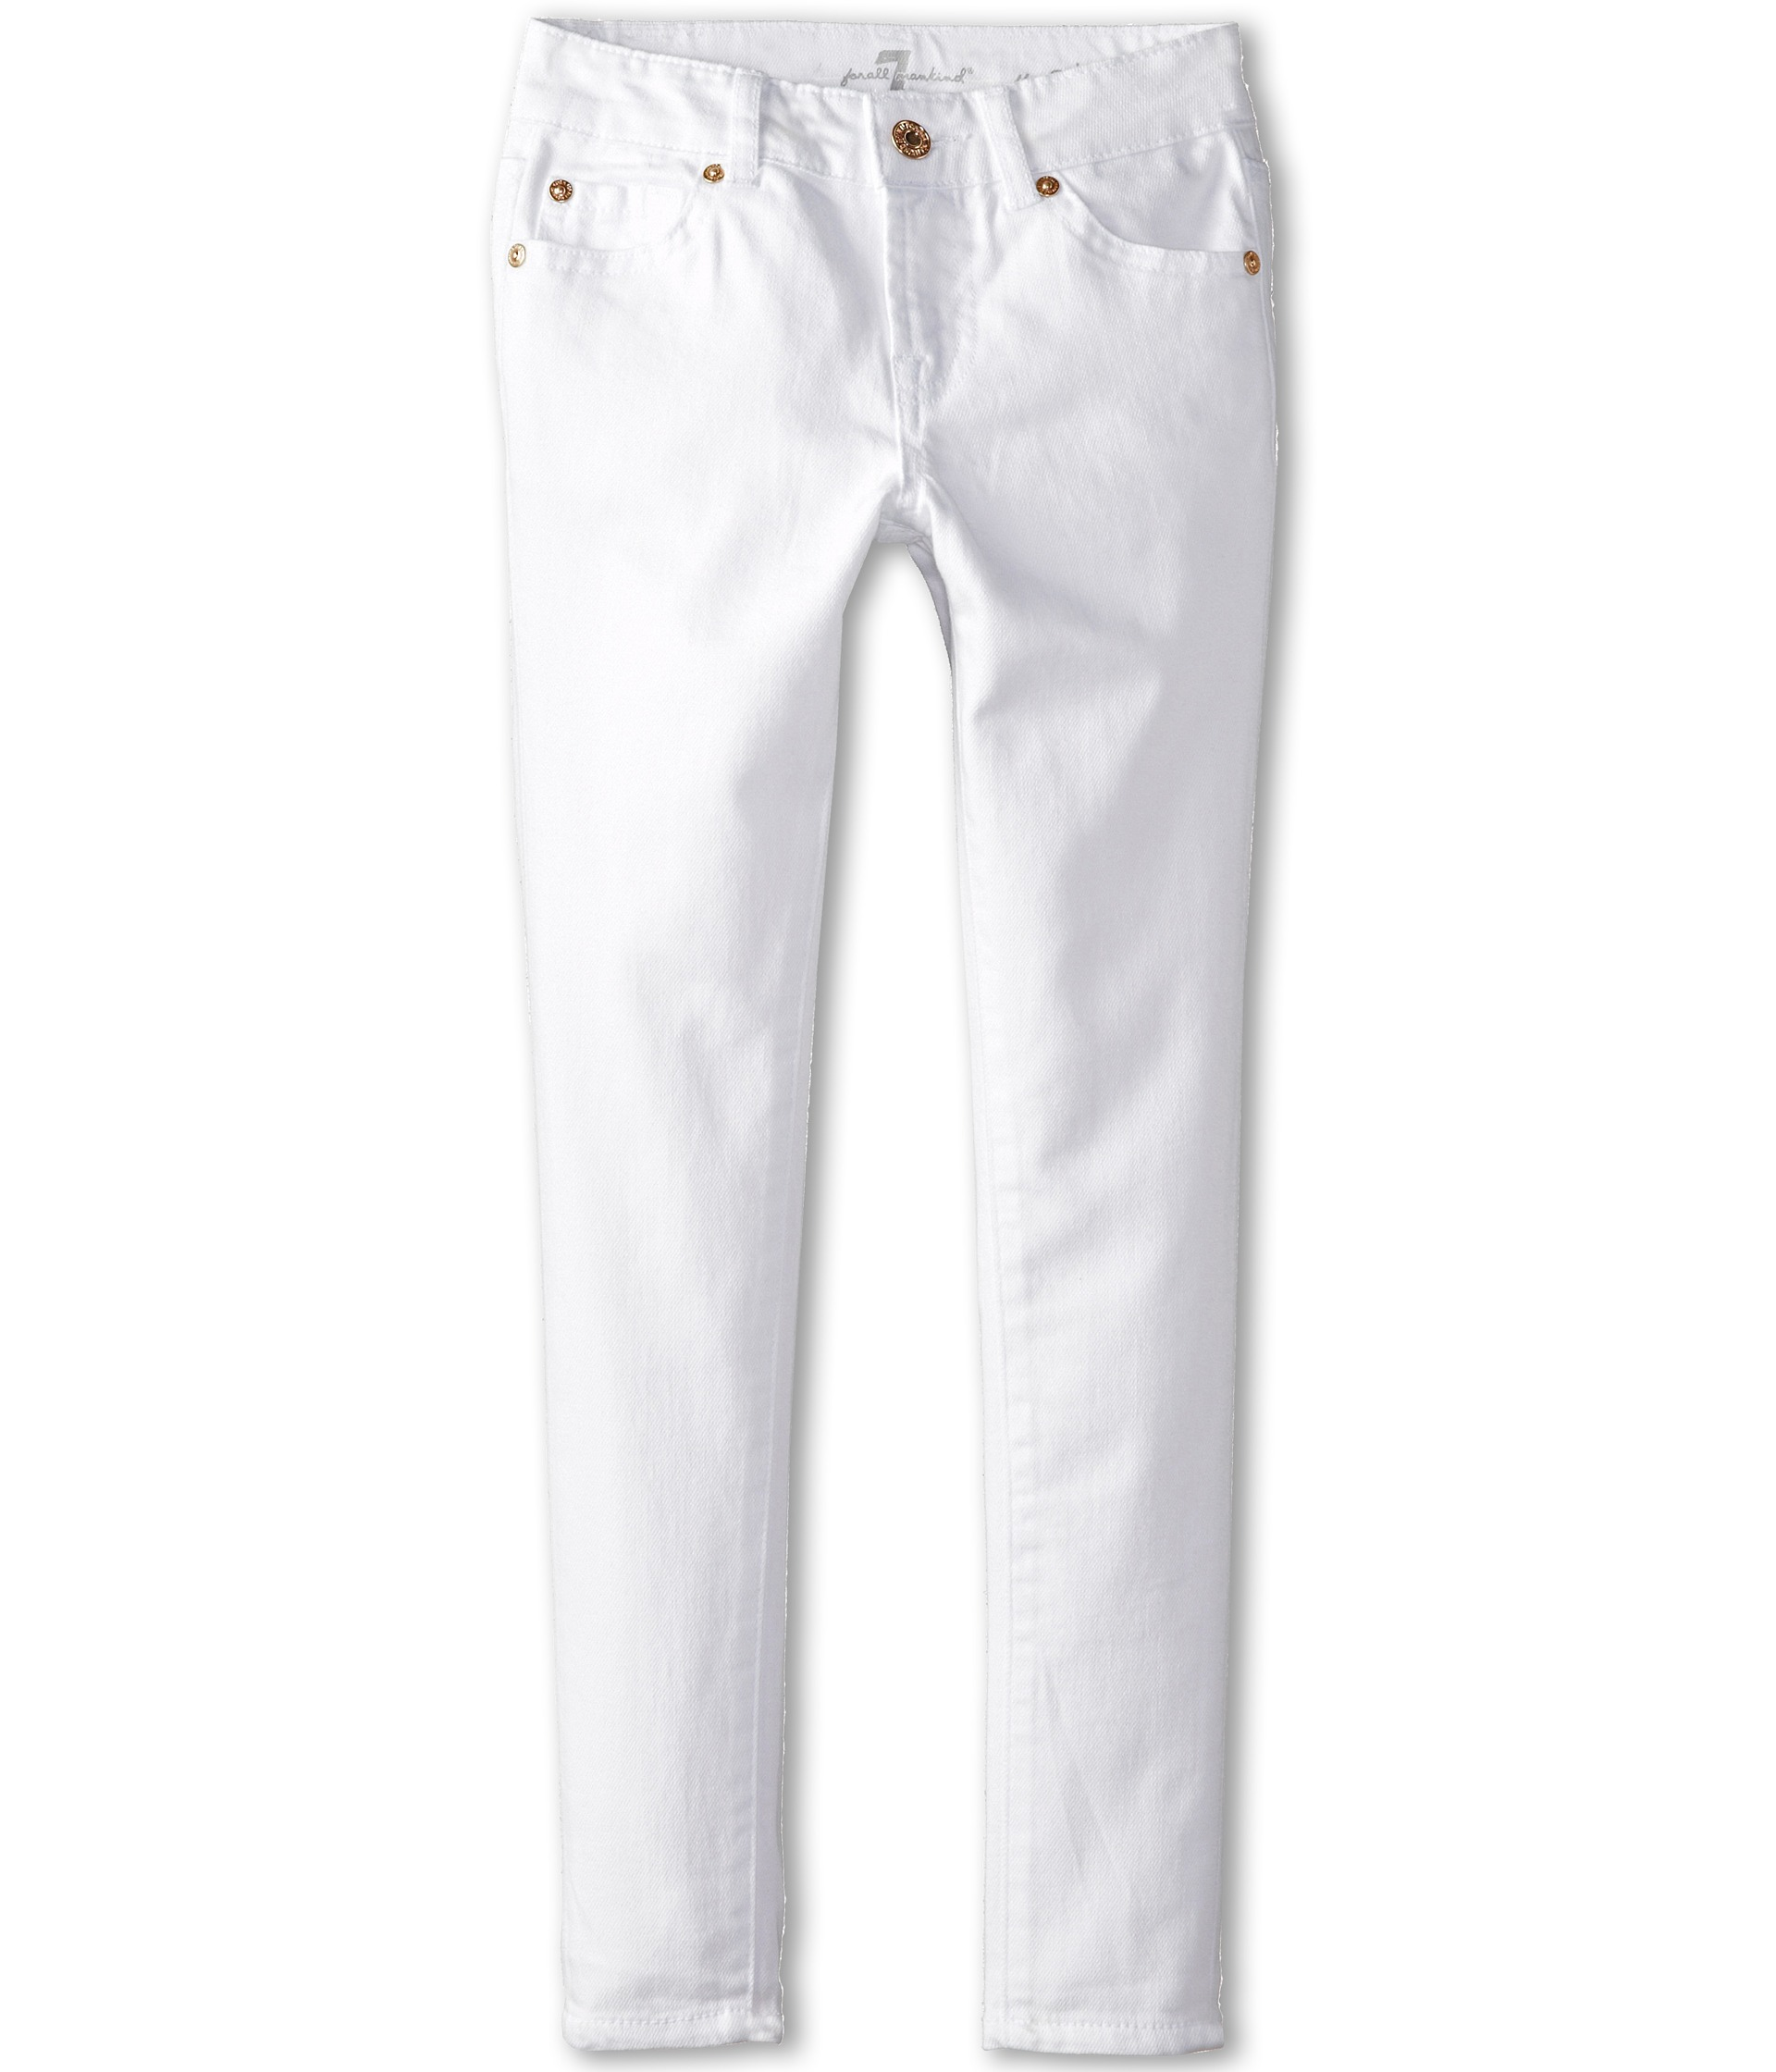 White skinny jeans - deals on 1001 Blocks